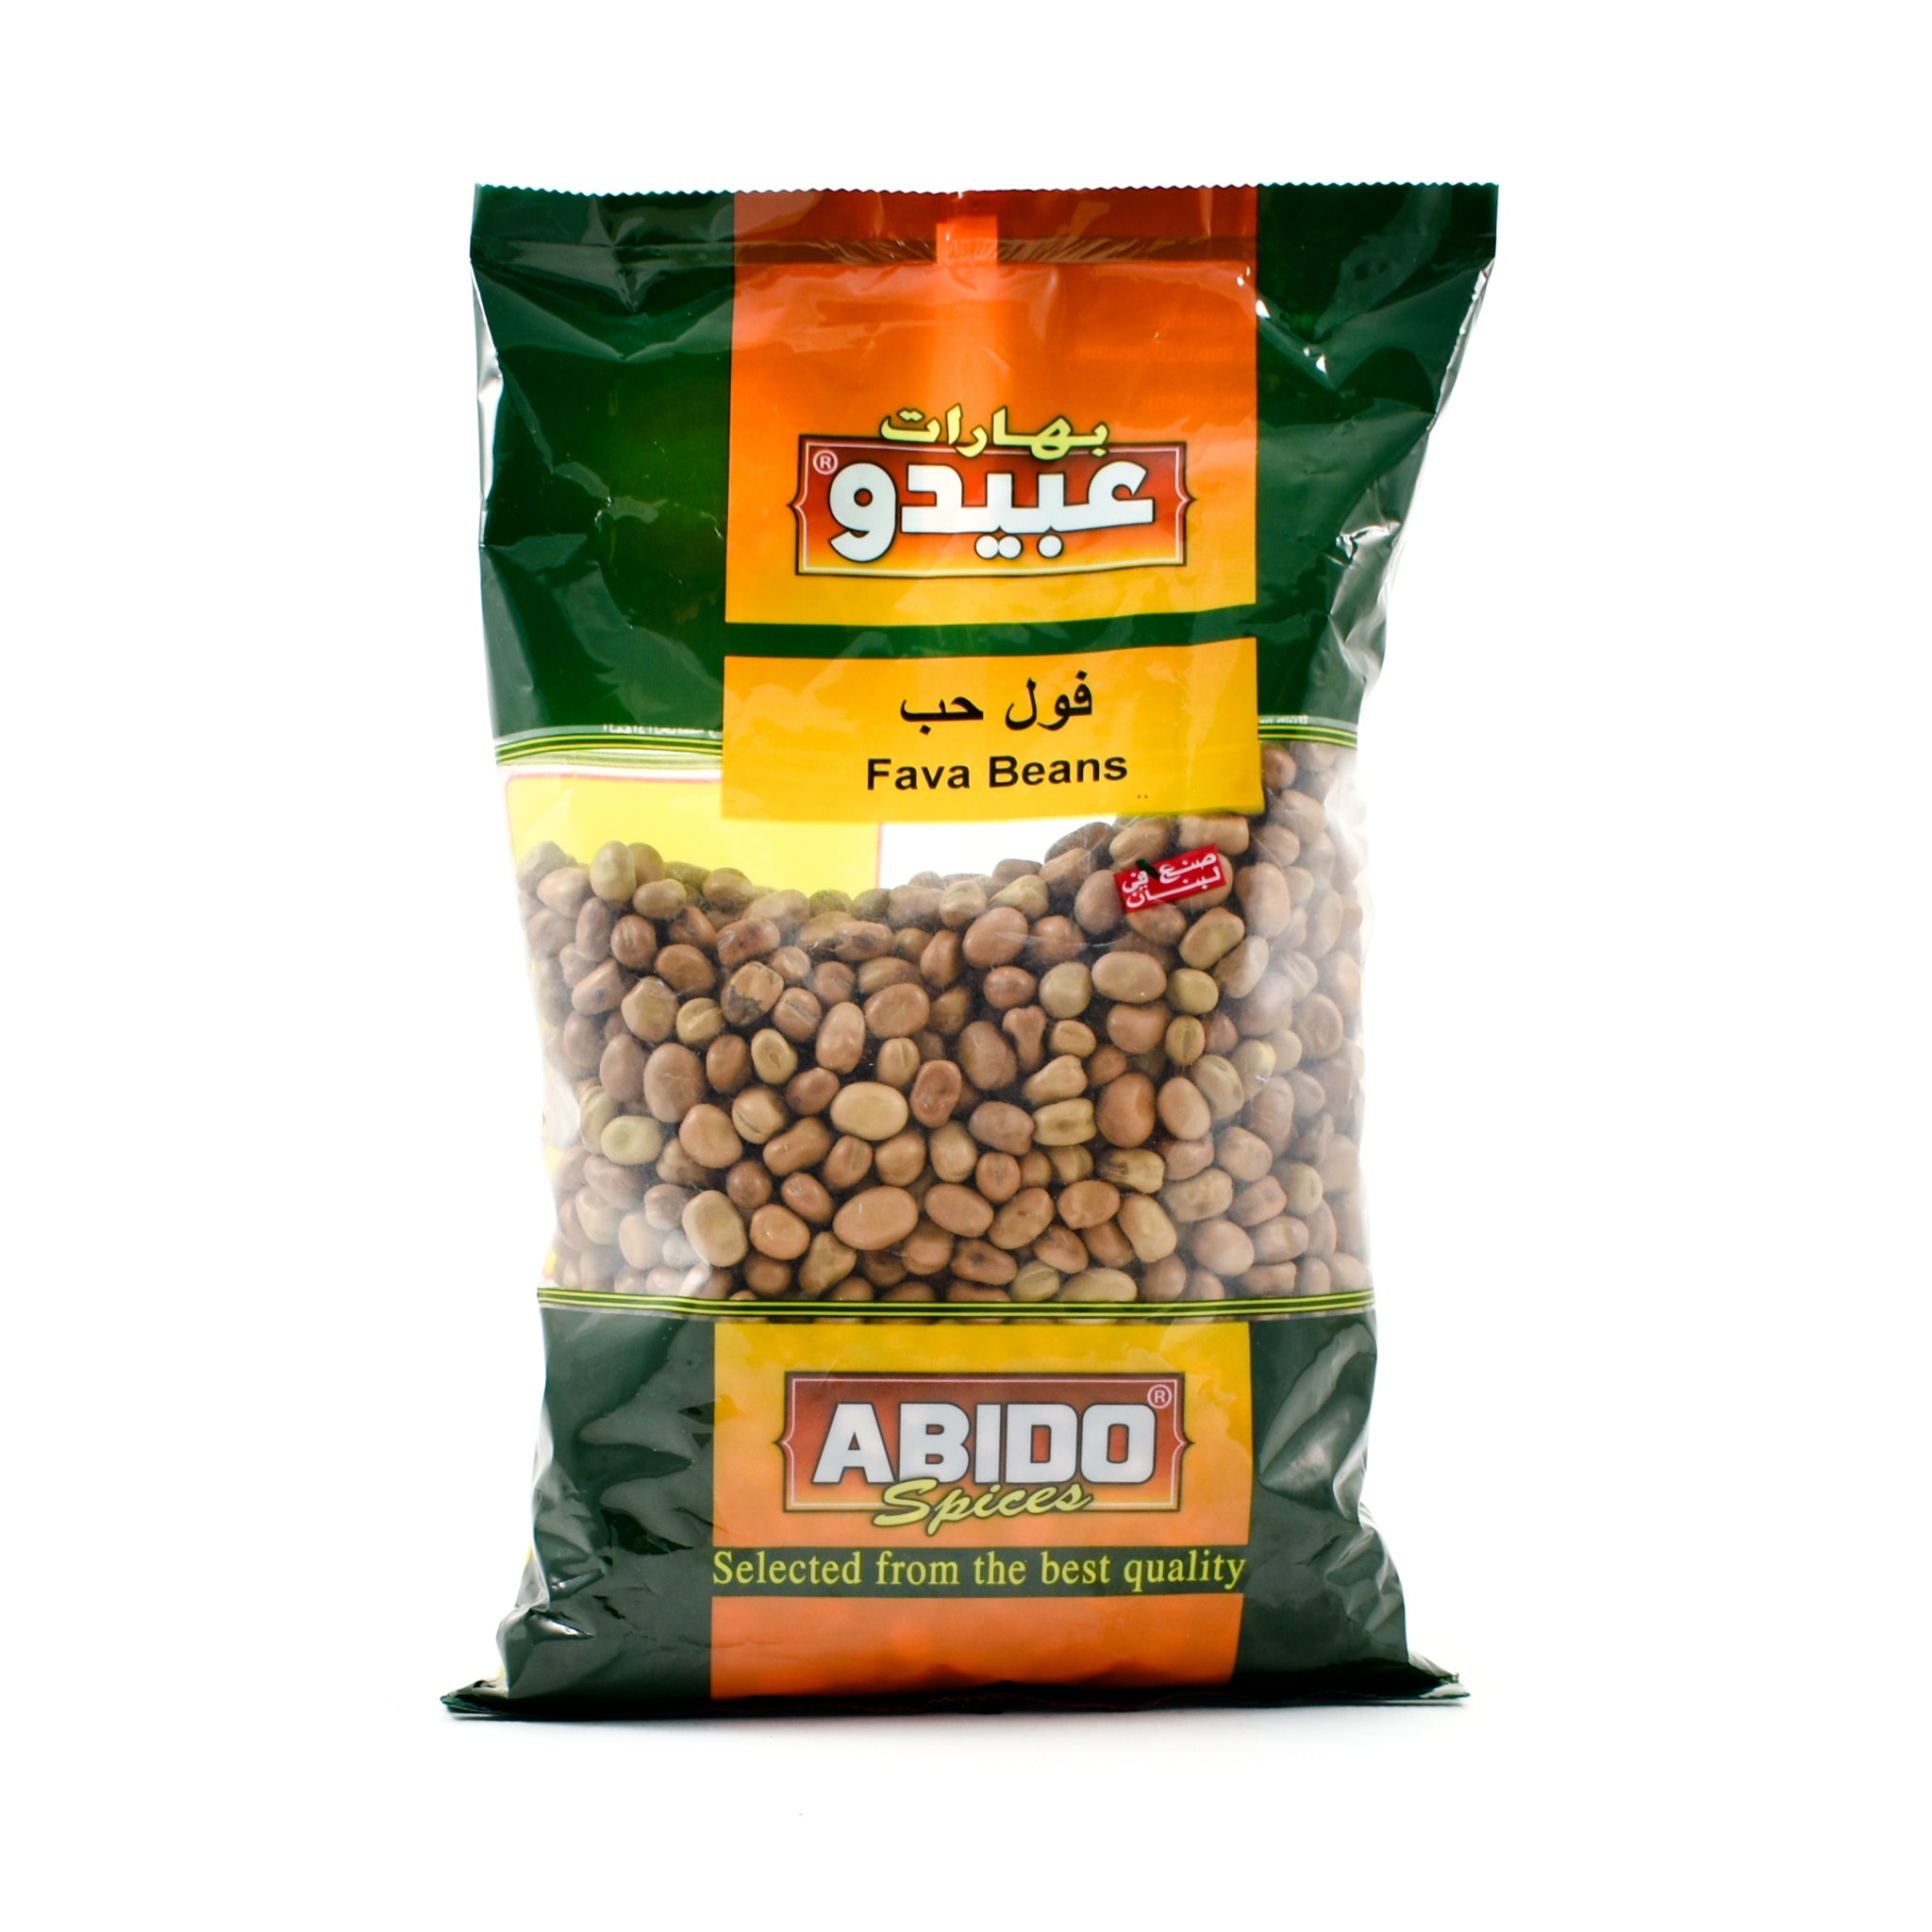 Abido Whole Fava Beans - Modamas 900g Ingredients Tofu & Beans & Pulses